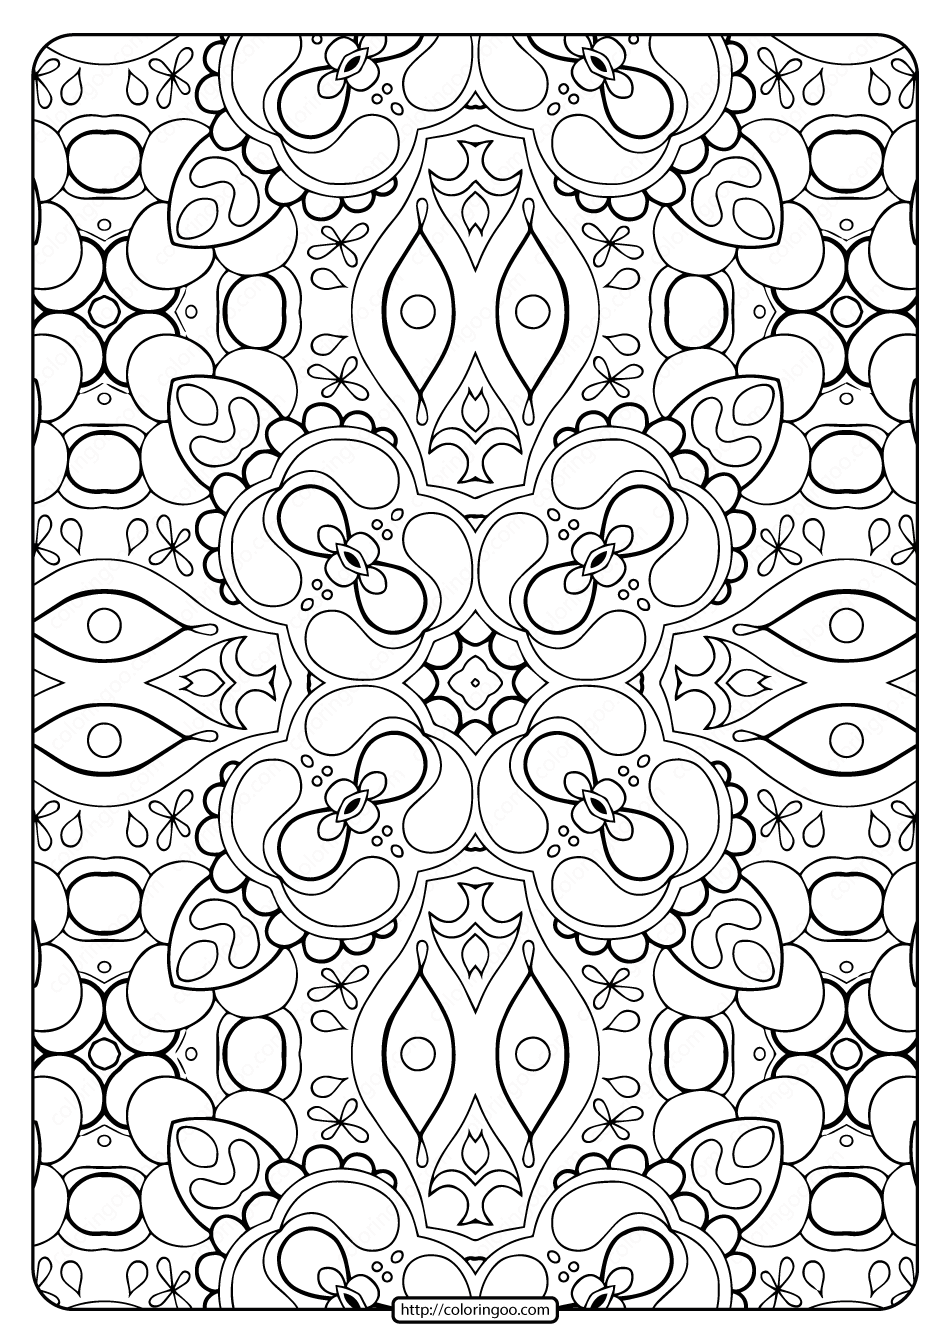 coloring prints for adults free printable abstract coloring pages for adults for coloring adults prints